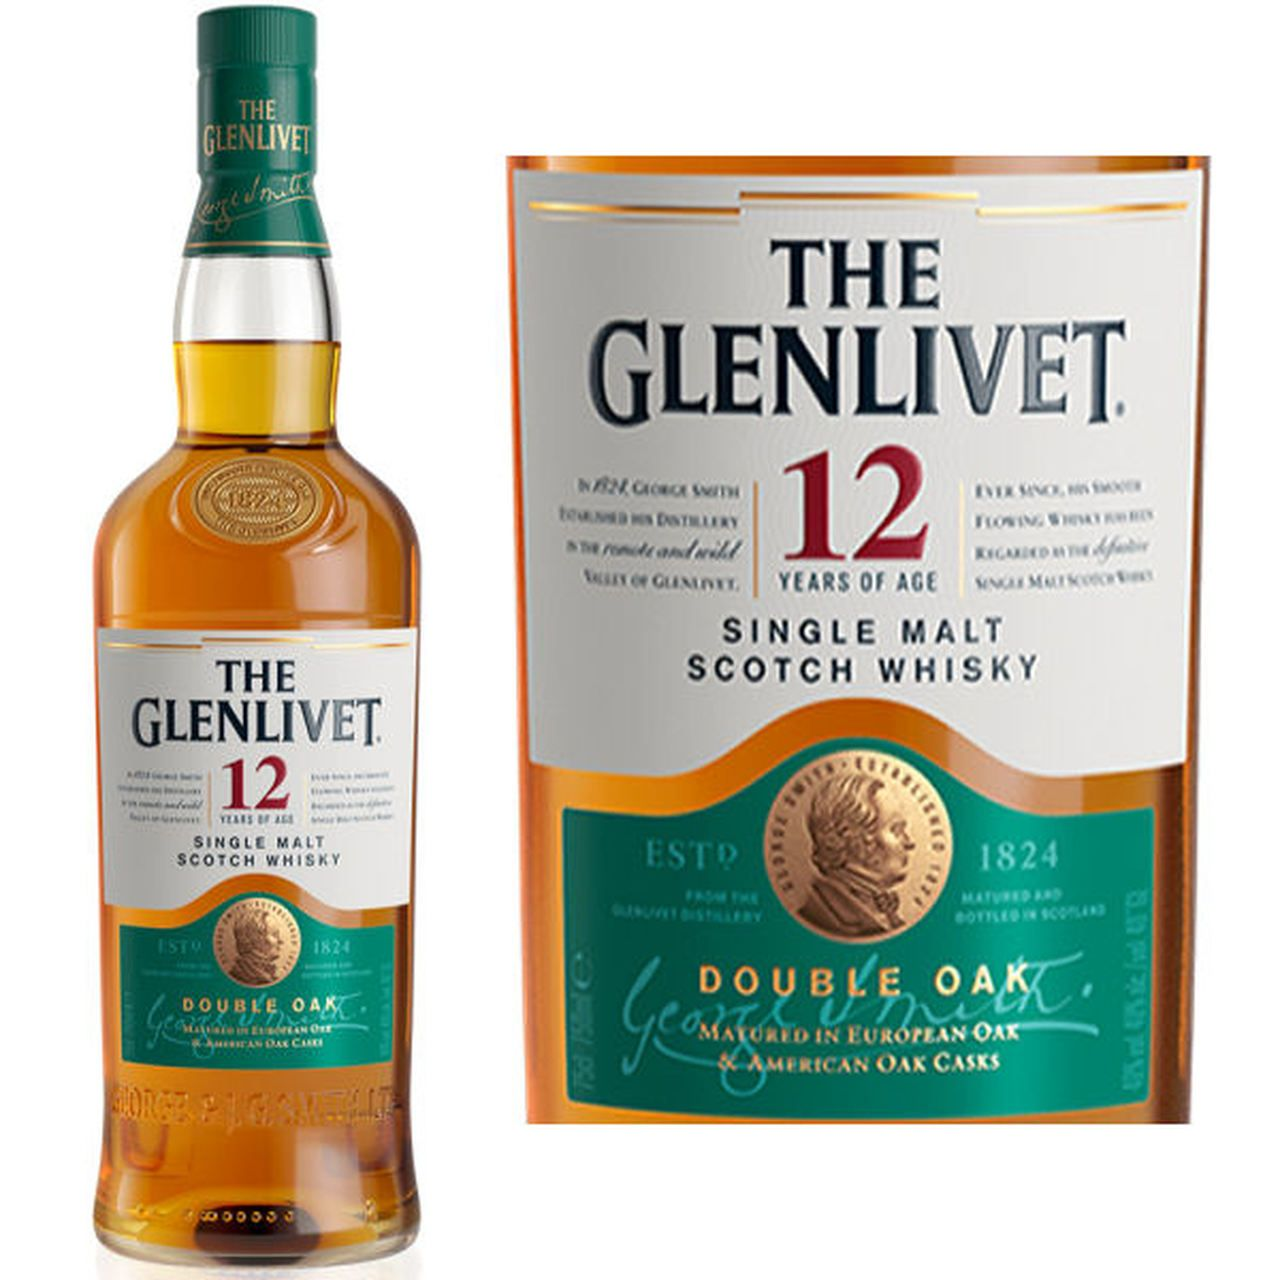 The Glenlivet 12 Year Old Double Oak Speyside 750ml Single Malt Malt Speyside